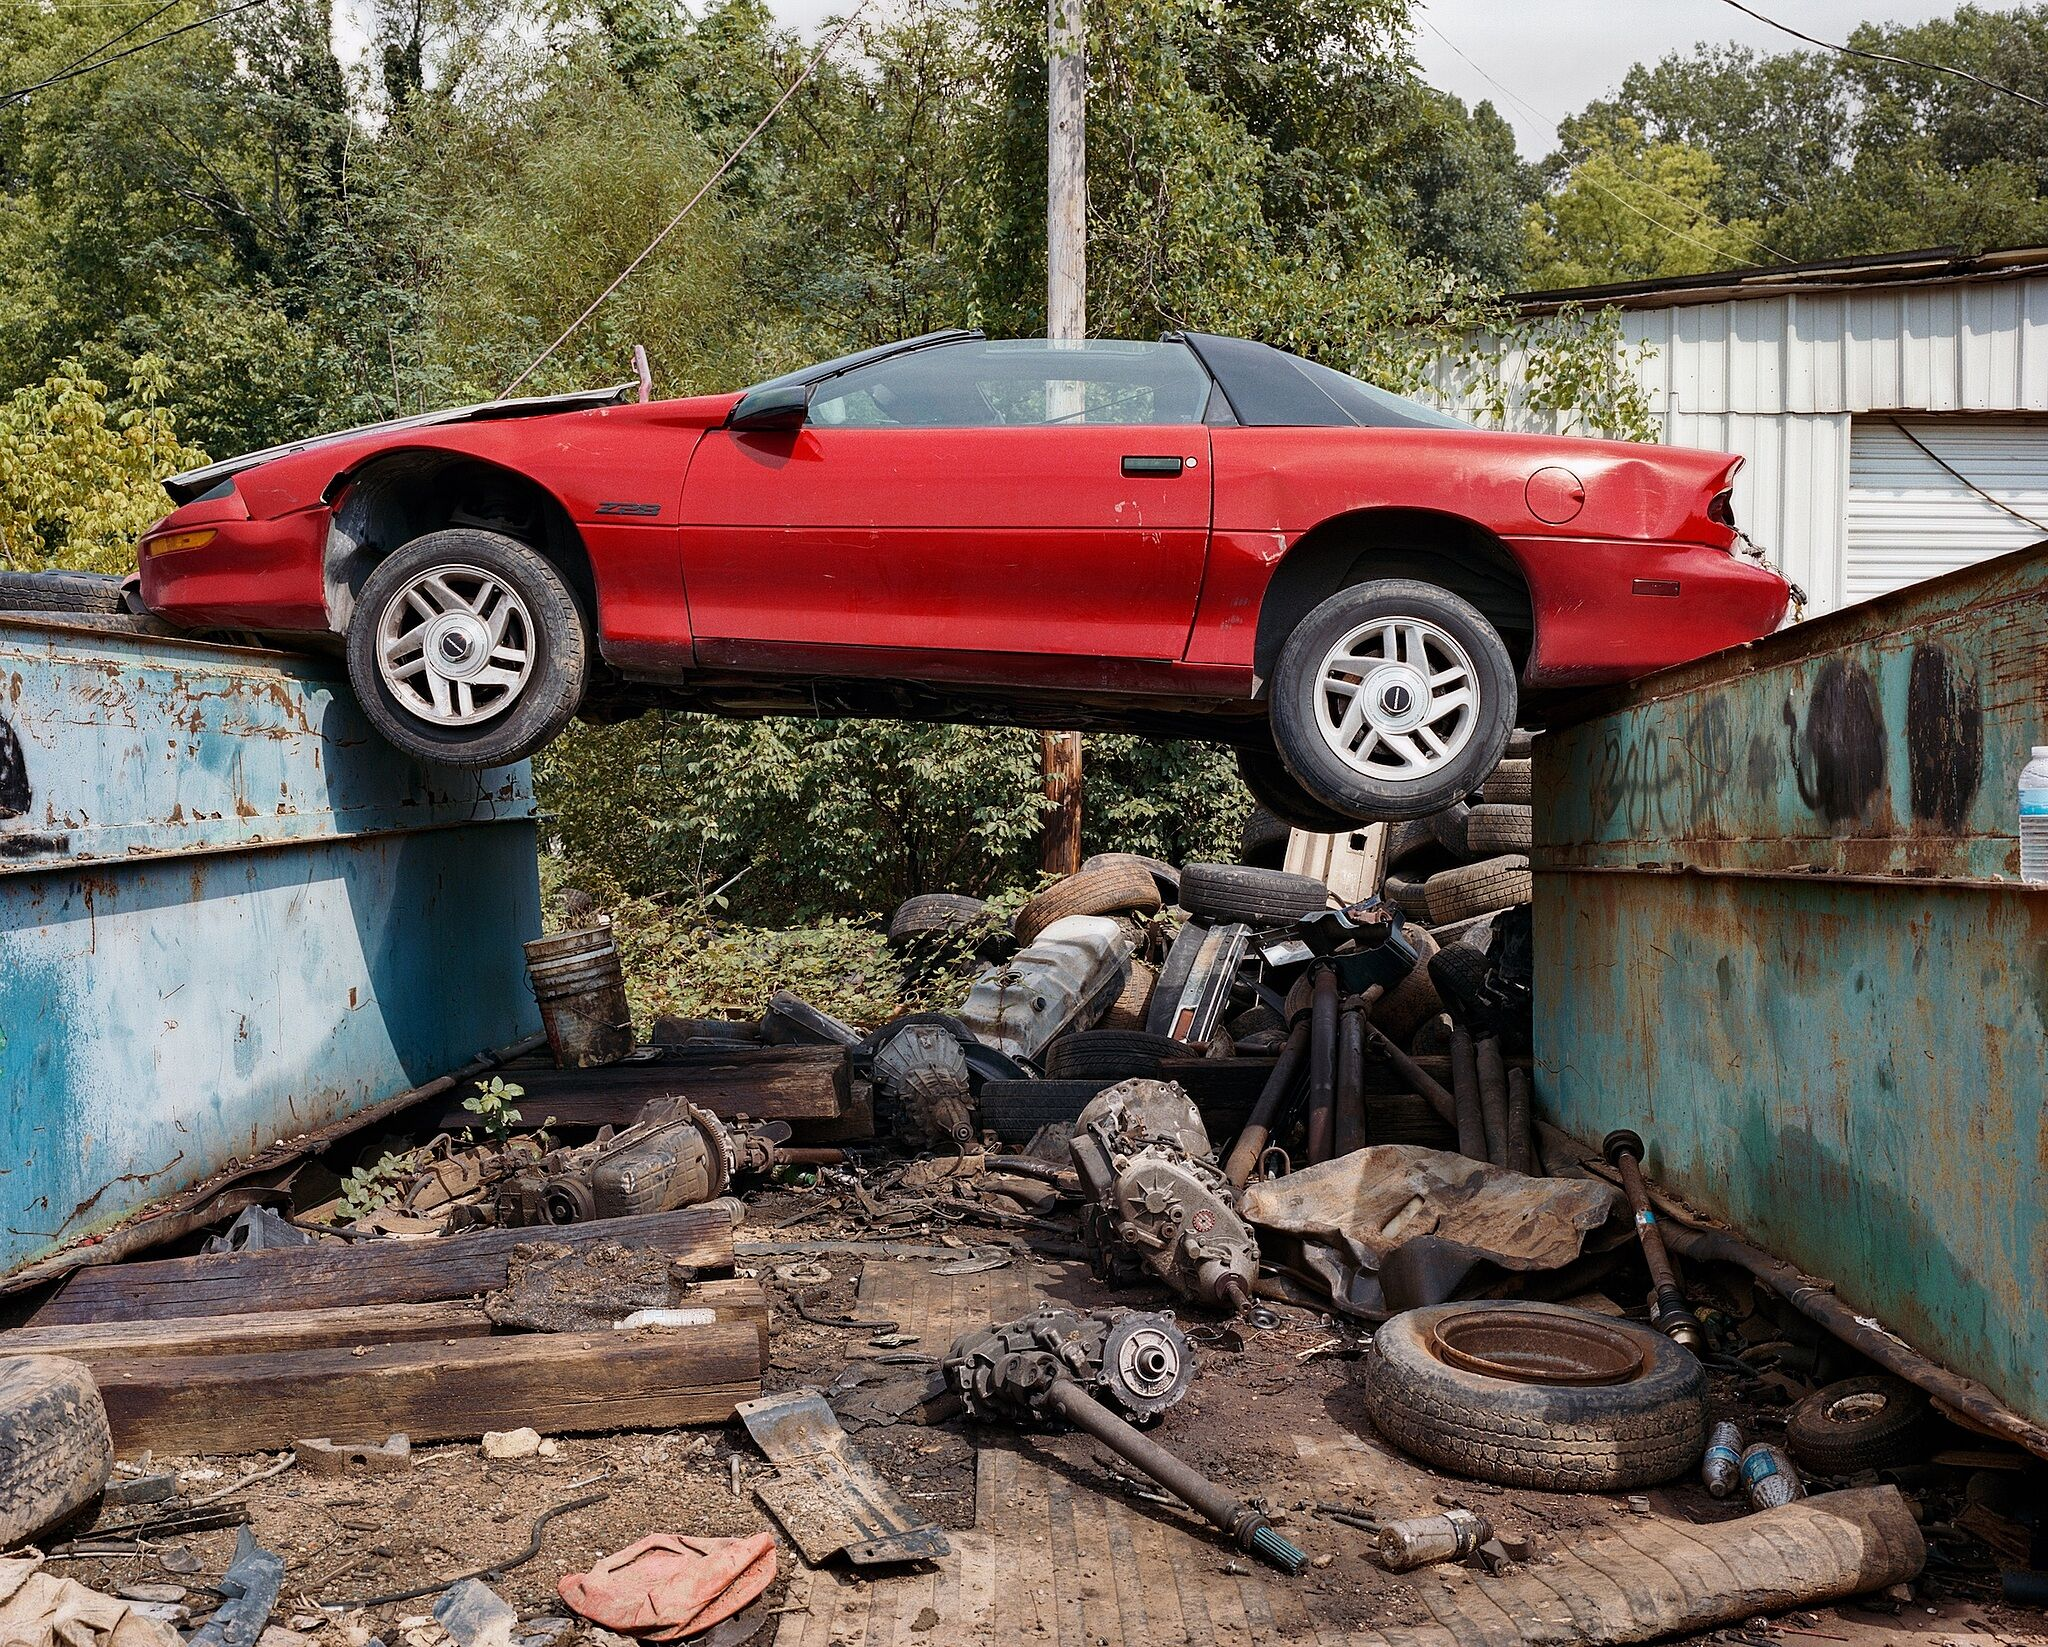 A red Camaro suspended on top of two garbage dumps in a wooded area.